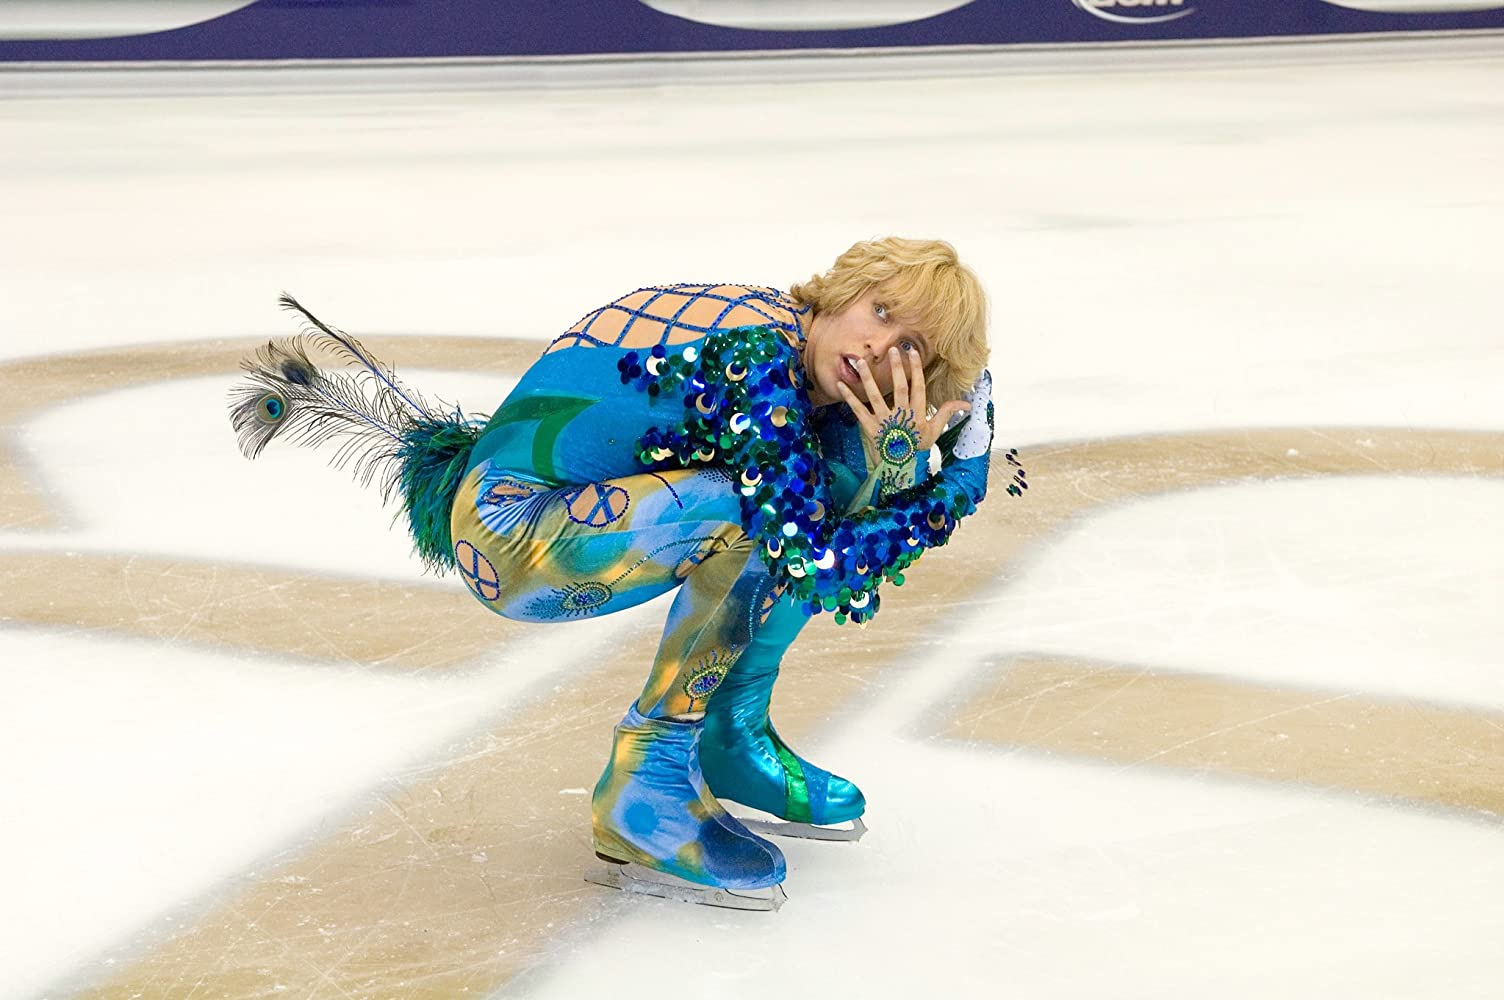 Jon Heder in Blades of Glory (2007)